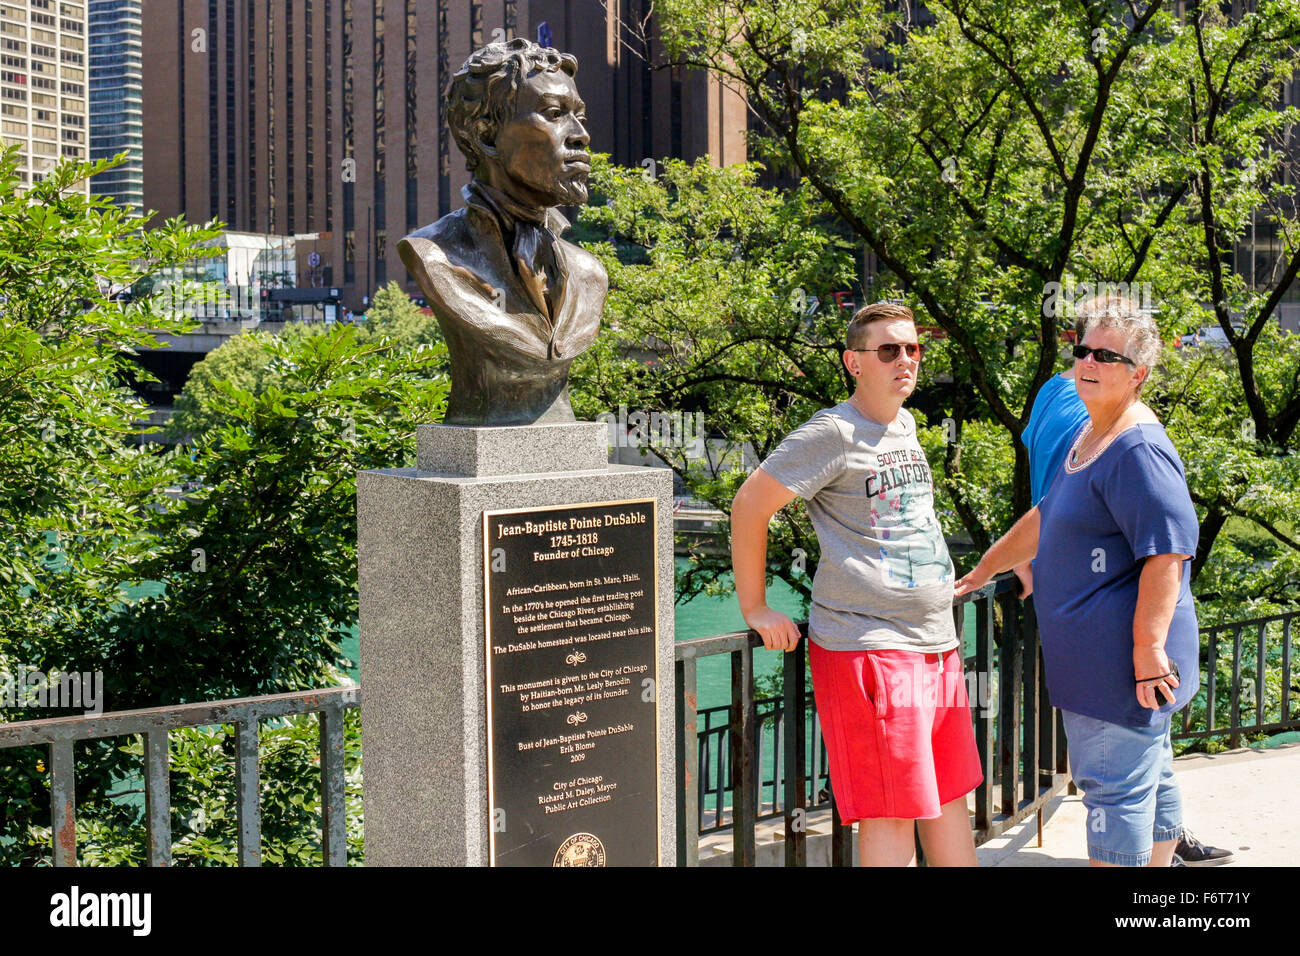 Bust of Jean-Baptiste Pointe DuSable at Pioneer Court, Chicago, Illinois. Erik Blome sculptor. - Stock Image